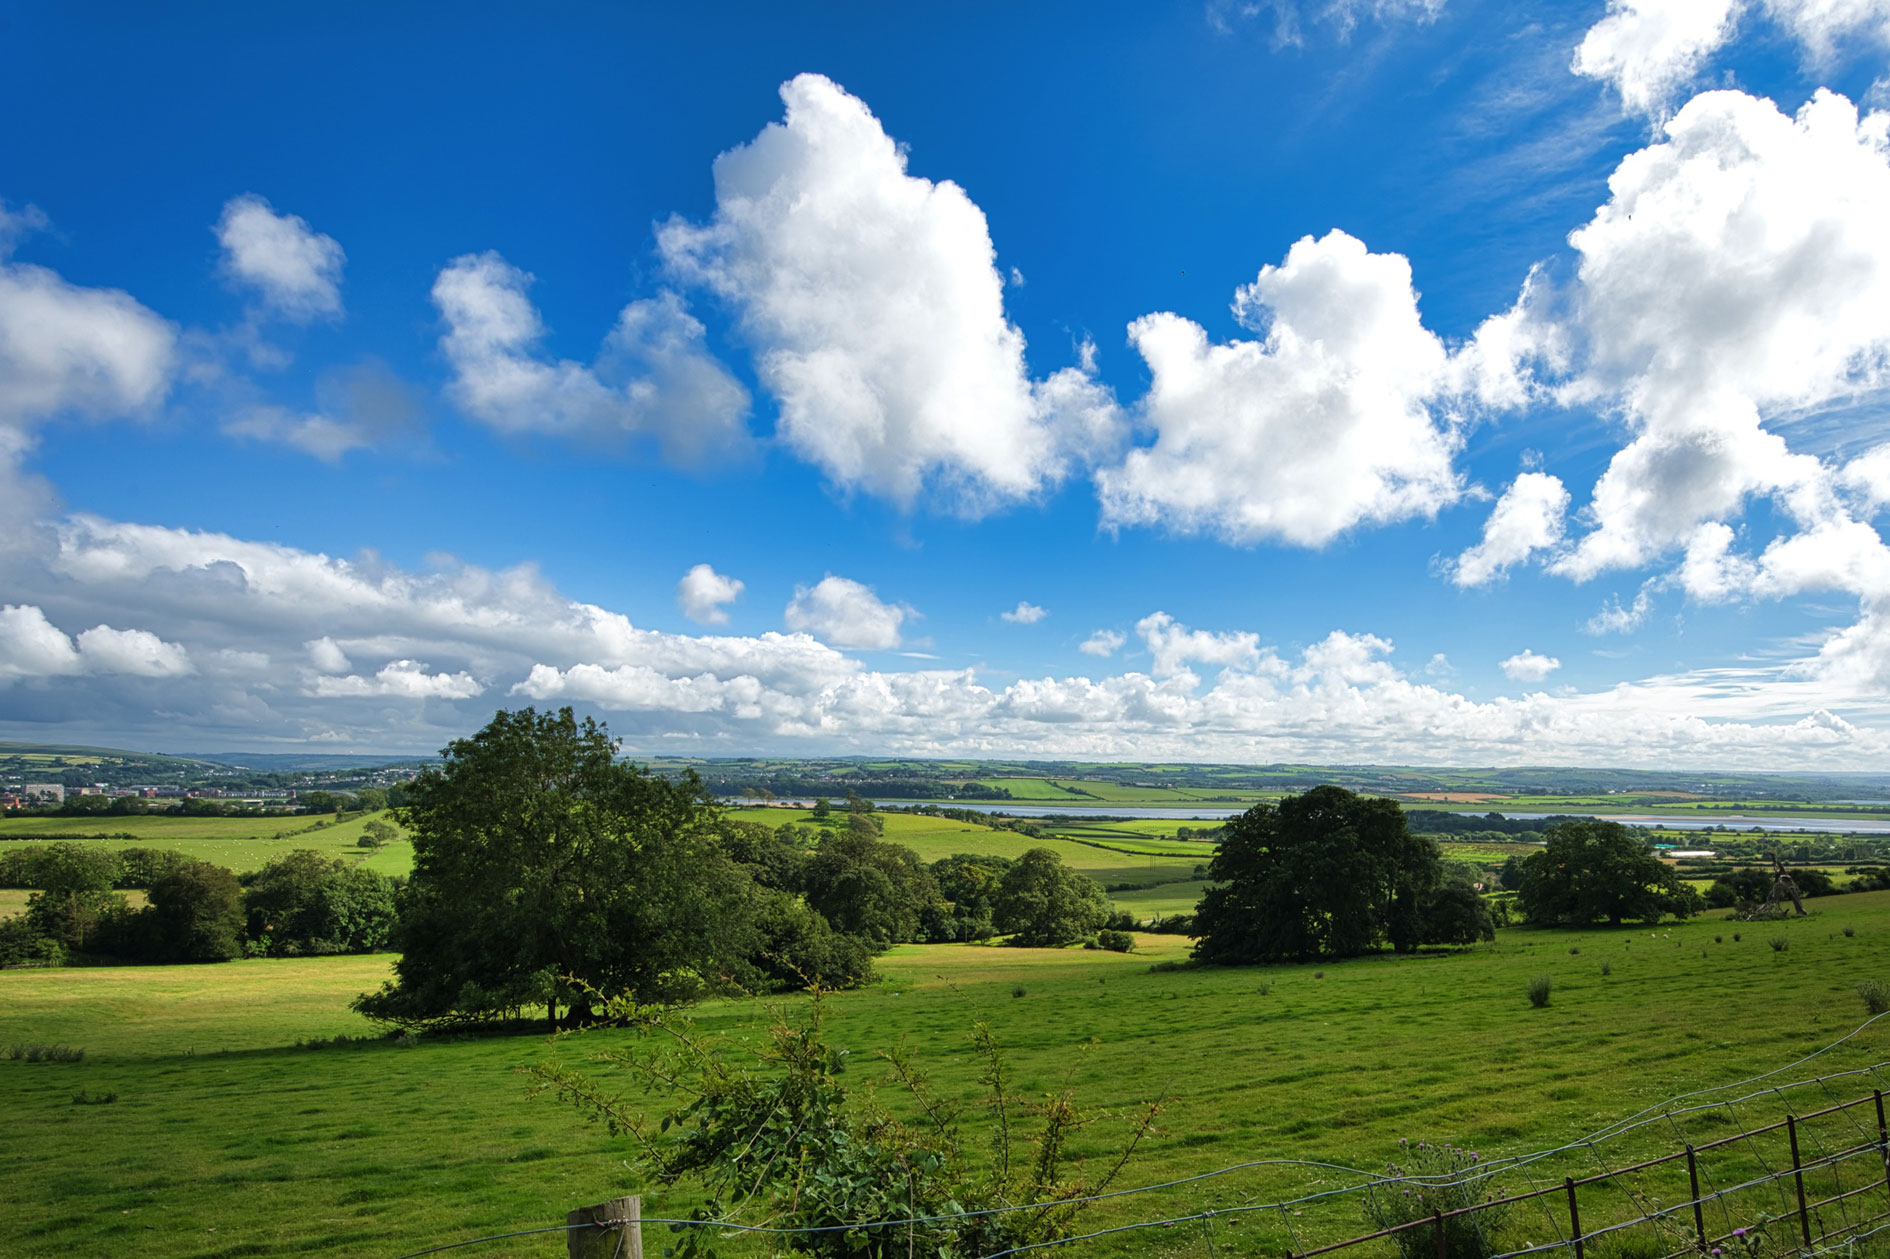 Beautiful View Of Green Fields And Countryside Expanse And Bright Blue Sky